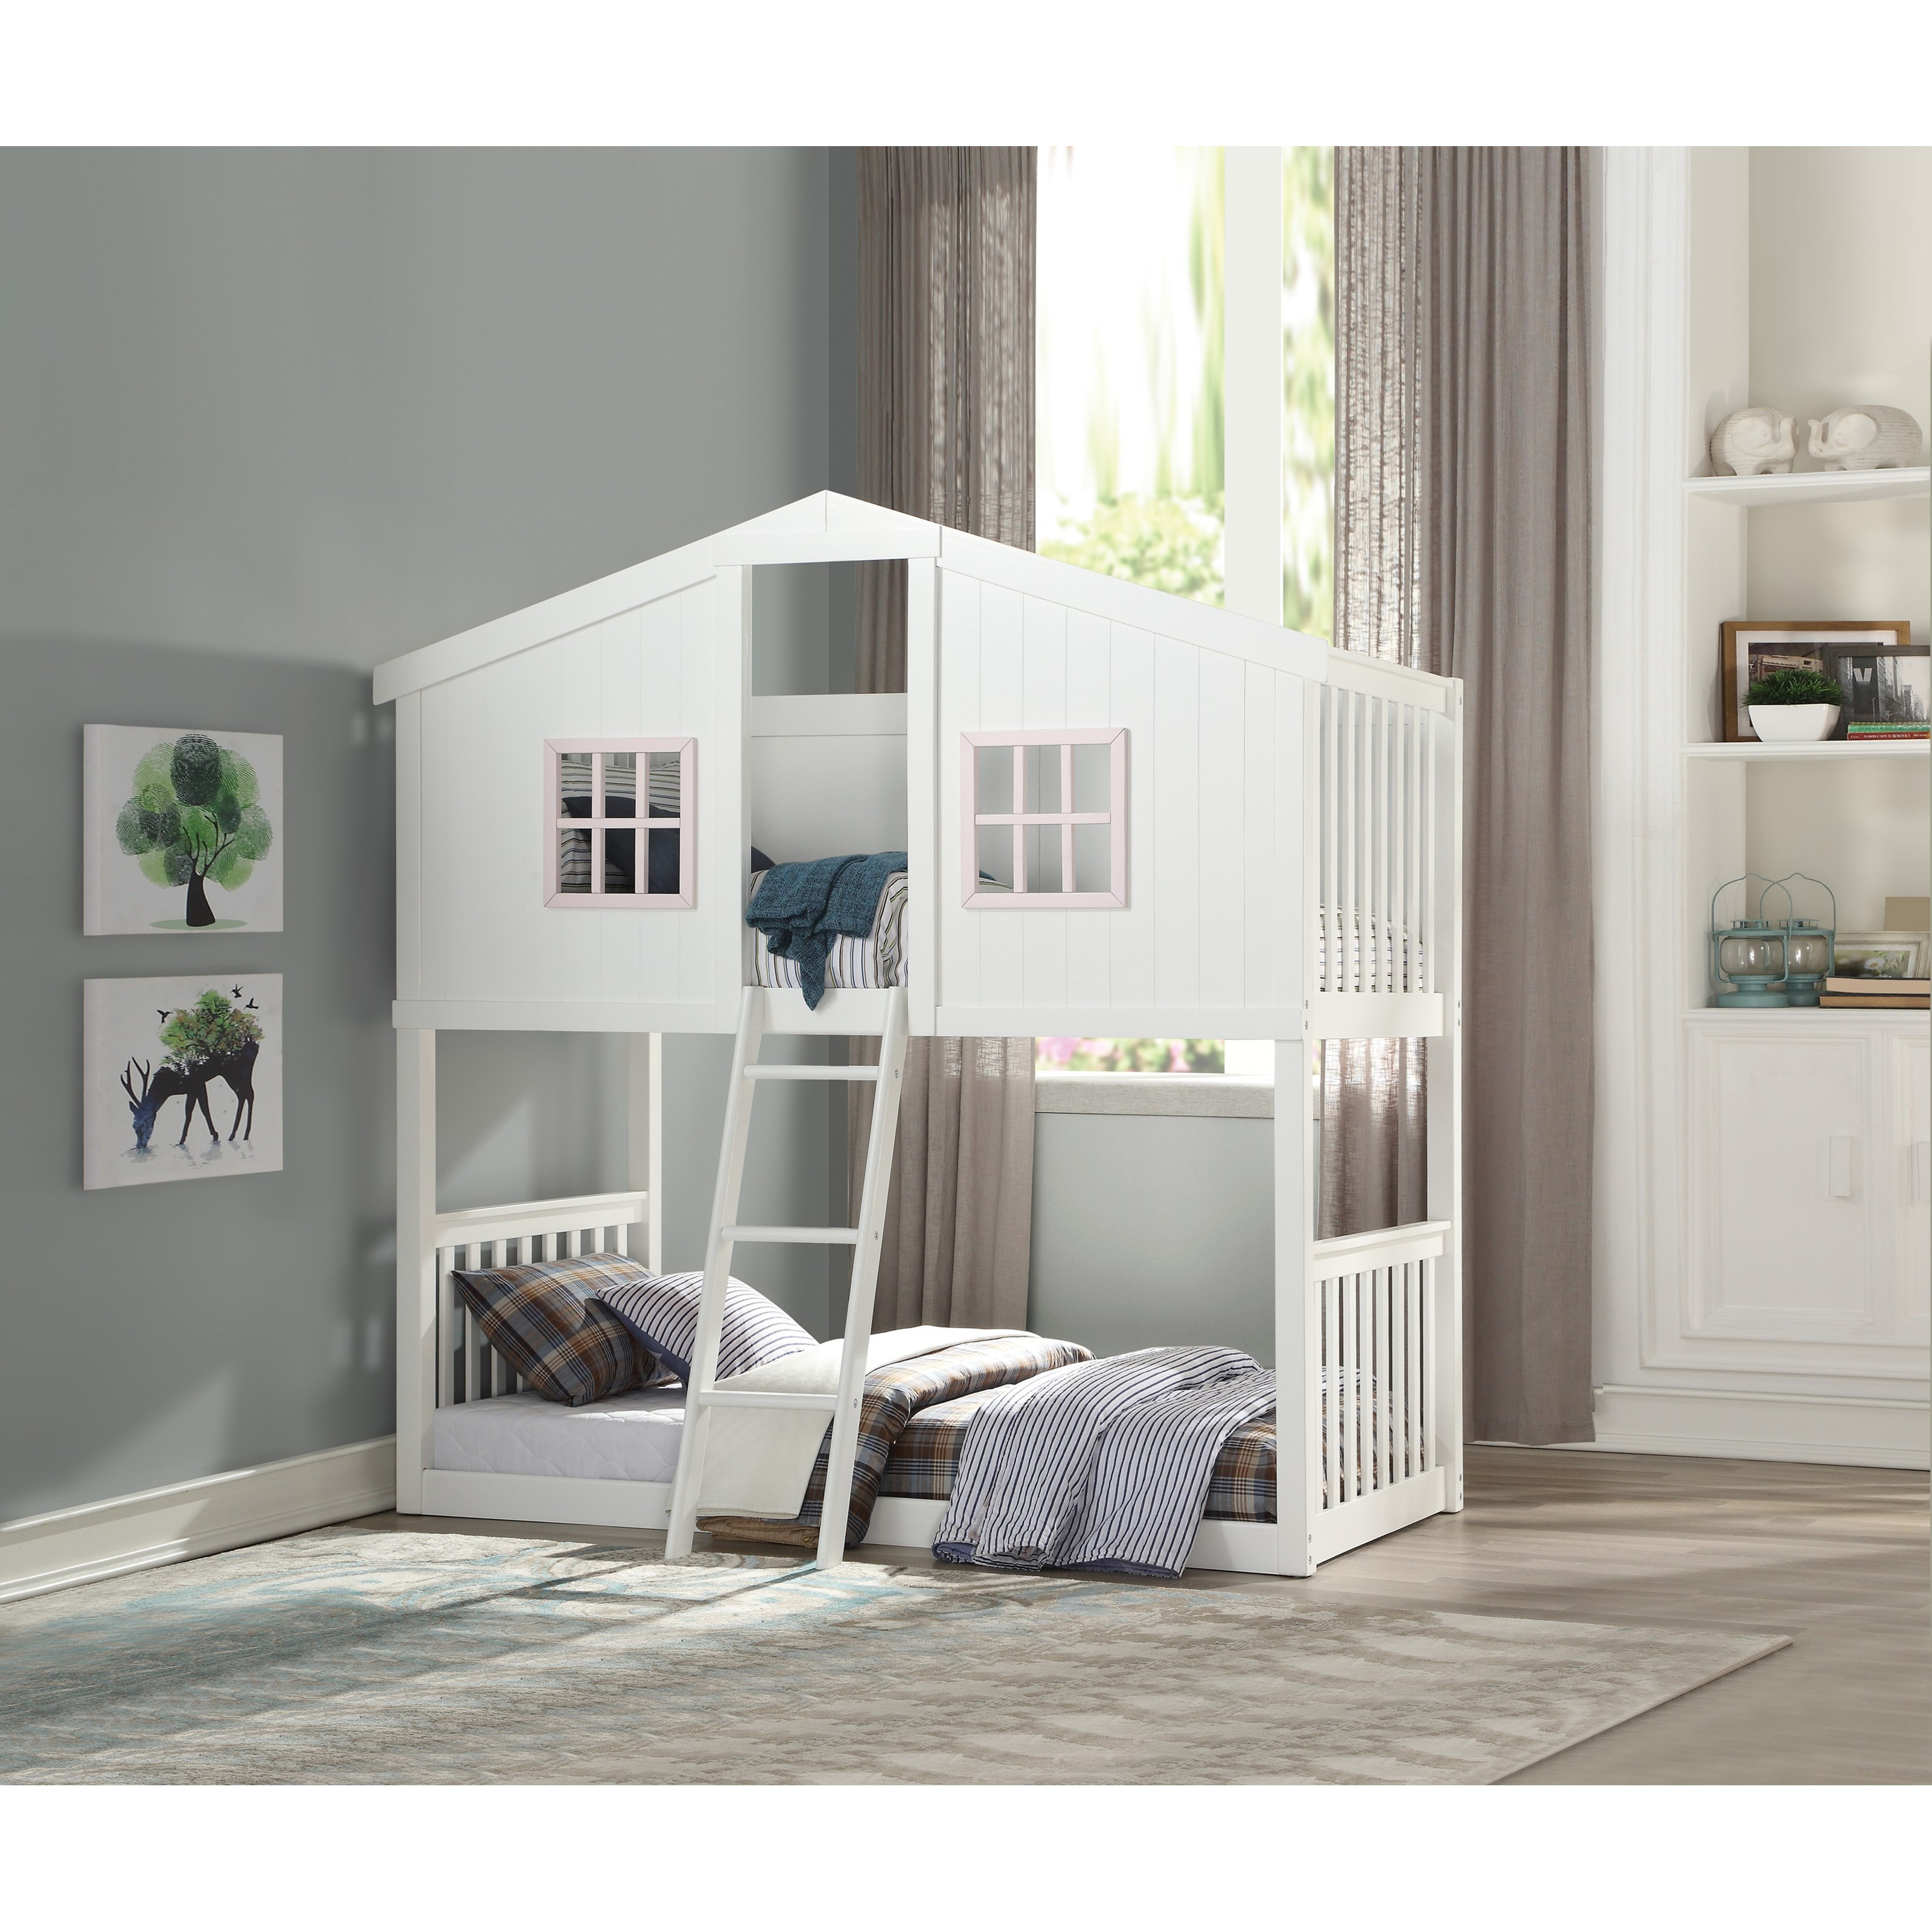 Picture of: Acme Furniture Rohan Cottage White Twin Twin Bunk Bed In Cottage Style With Pink Accents Dream Home Interiors Bunk Beds